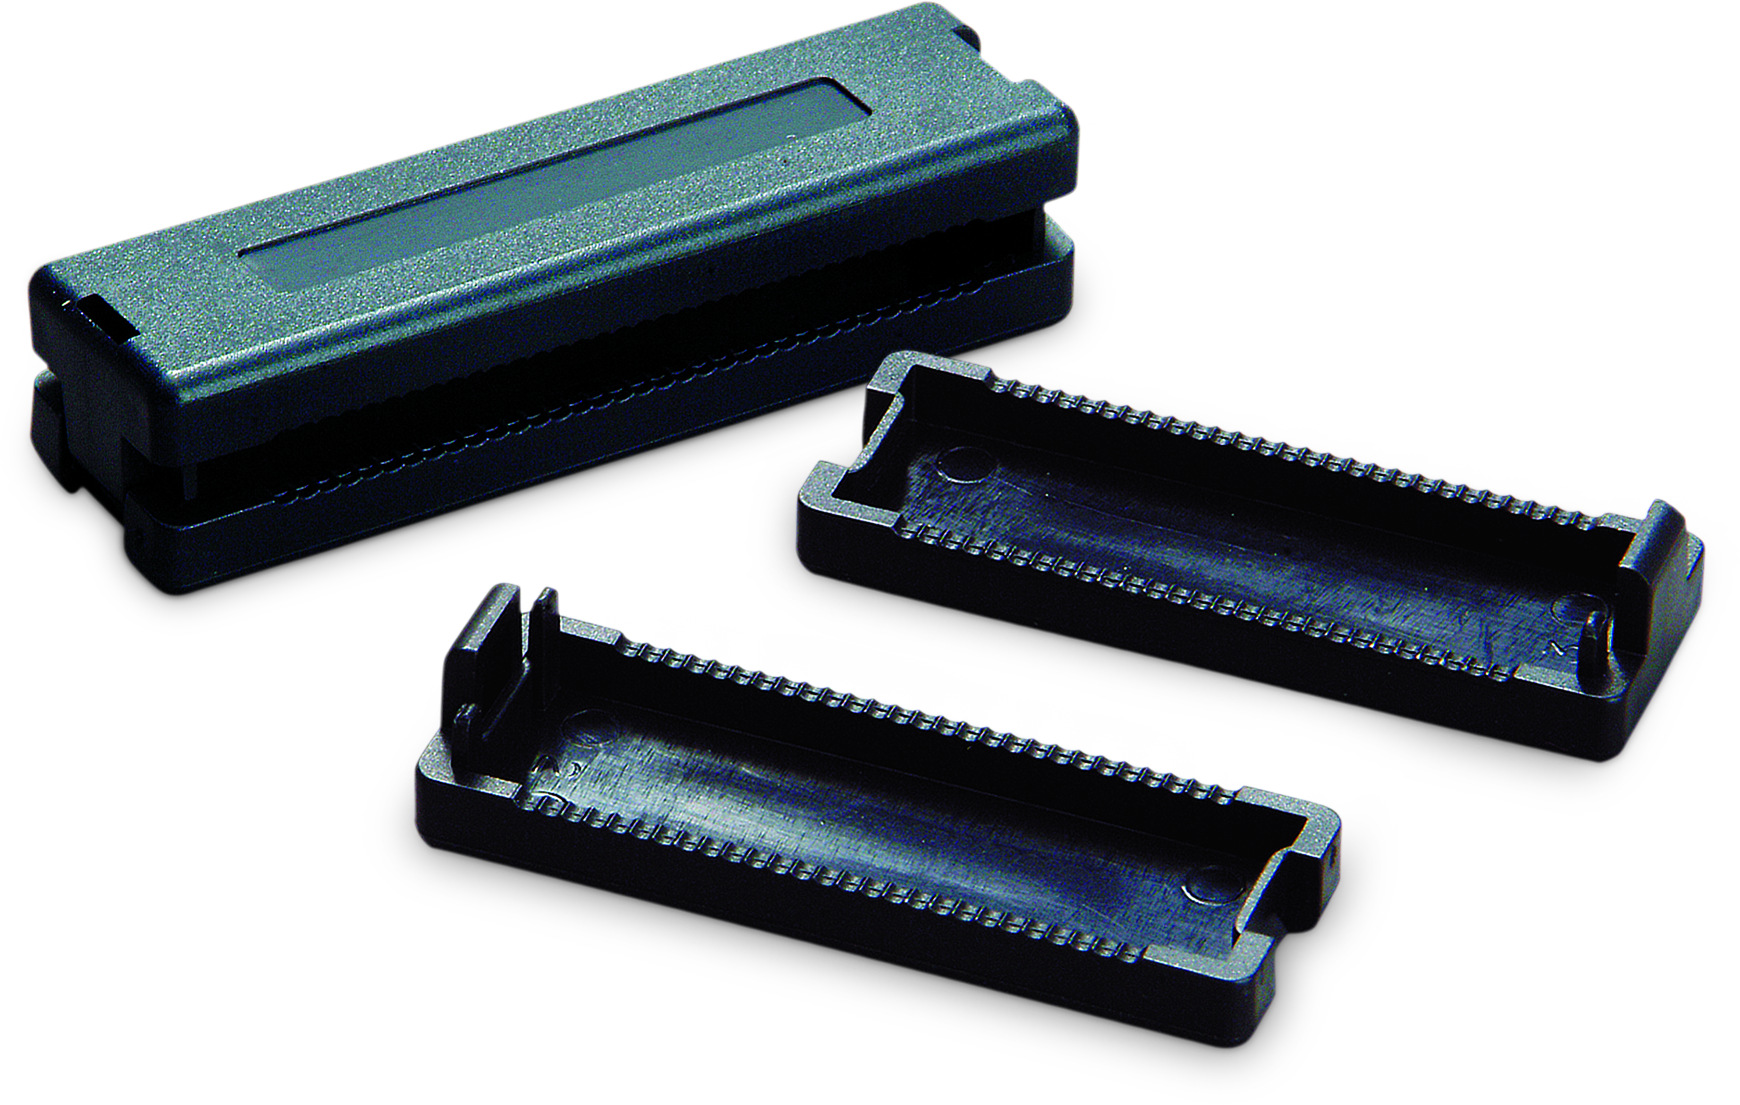 WE-FCAC Ferrite Core Assembly Components Picture